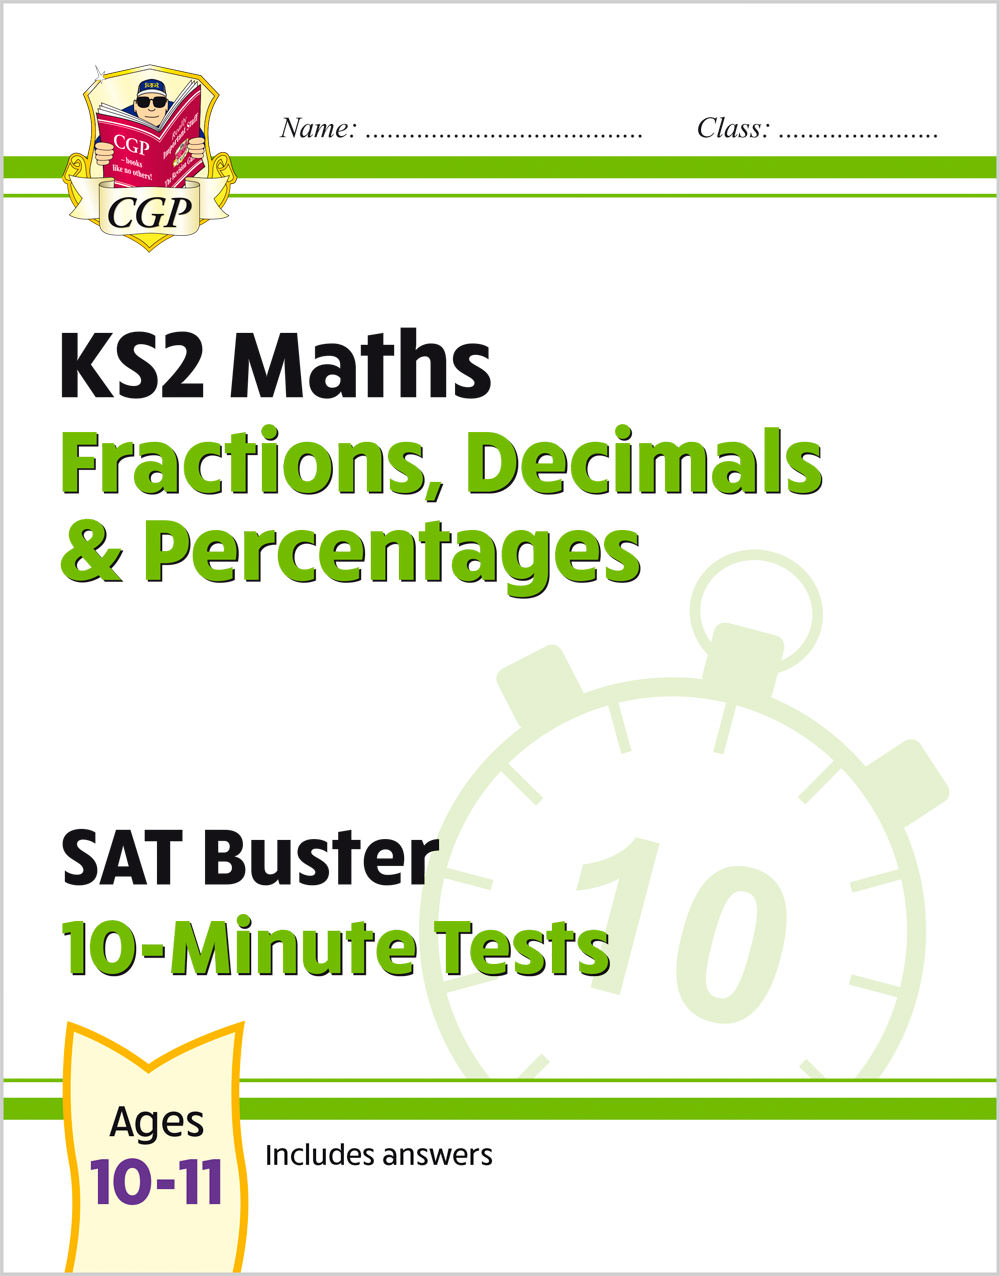 MFDPXP21 - New KS2 Maths SAT Buster 10-Minute Tests - Fractions, Decimals & Percentages (for the 202